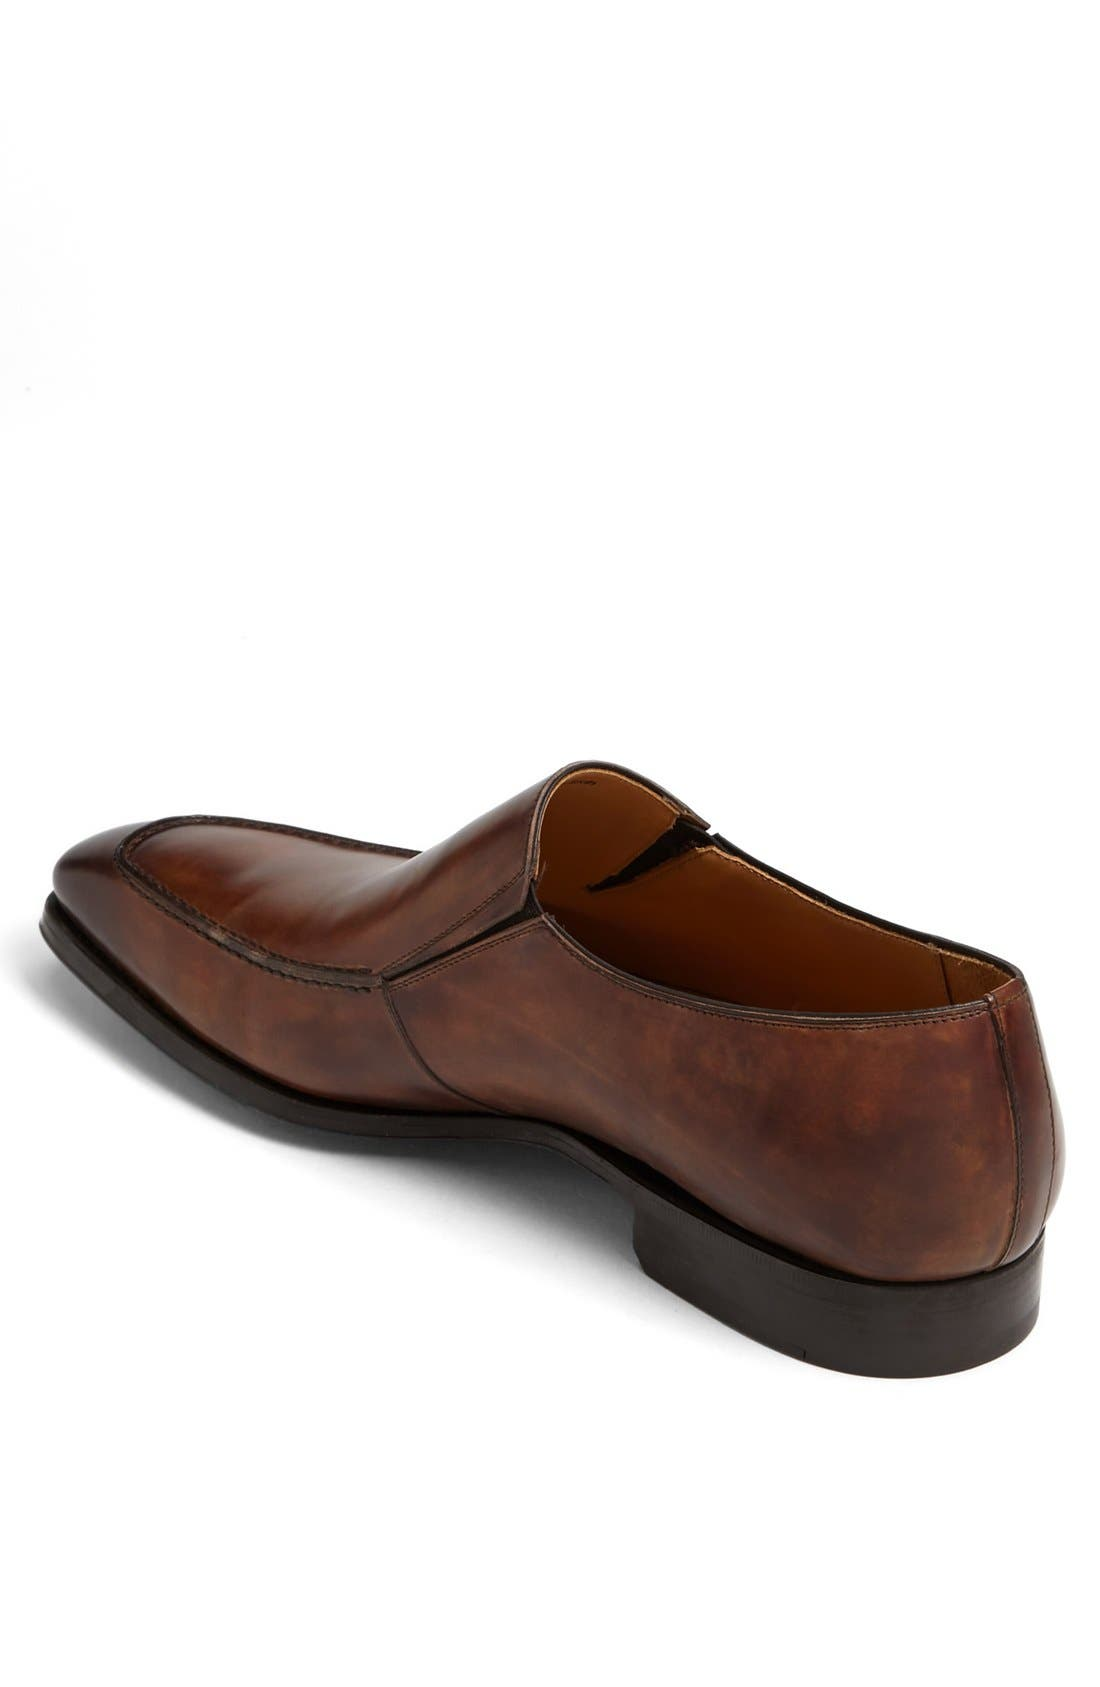 Alternate Image 2  - Magnanni 'Leo' Venetian Loafer